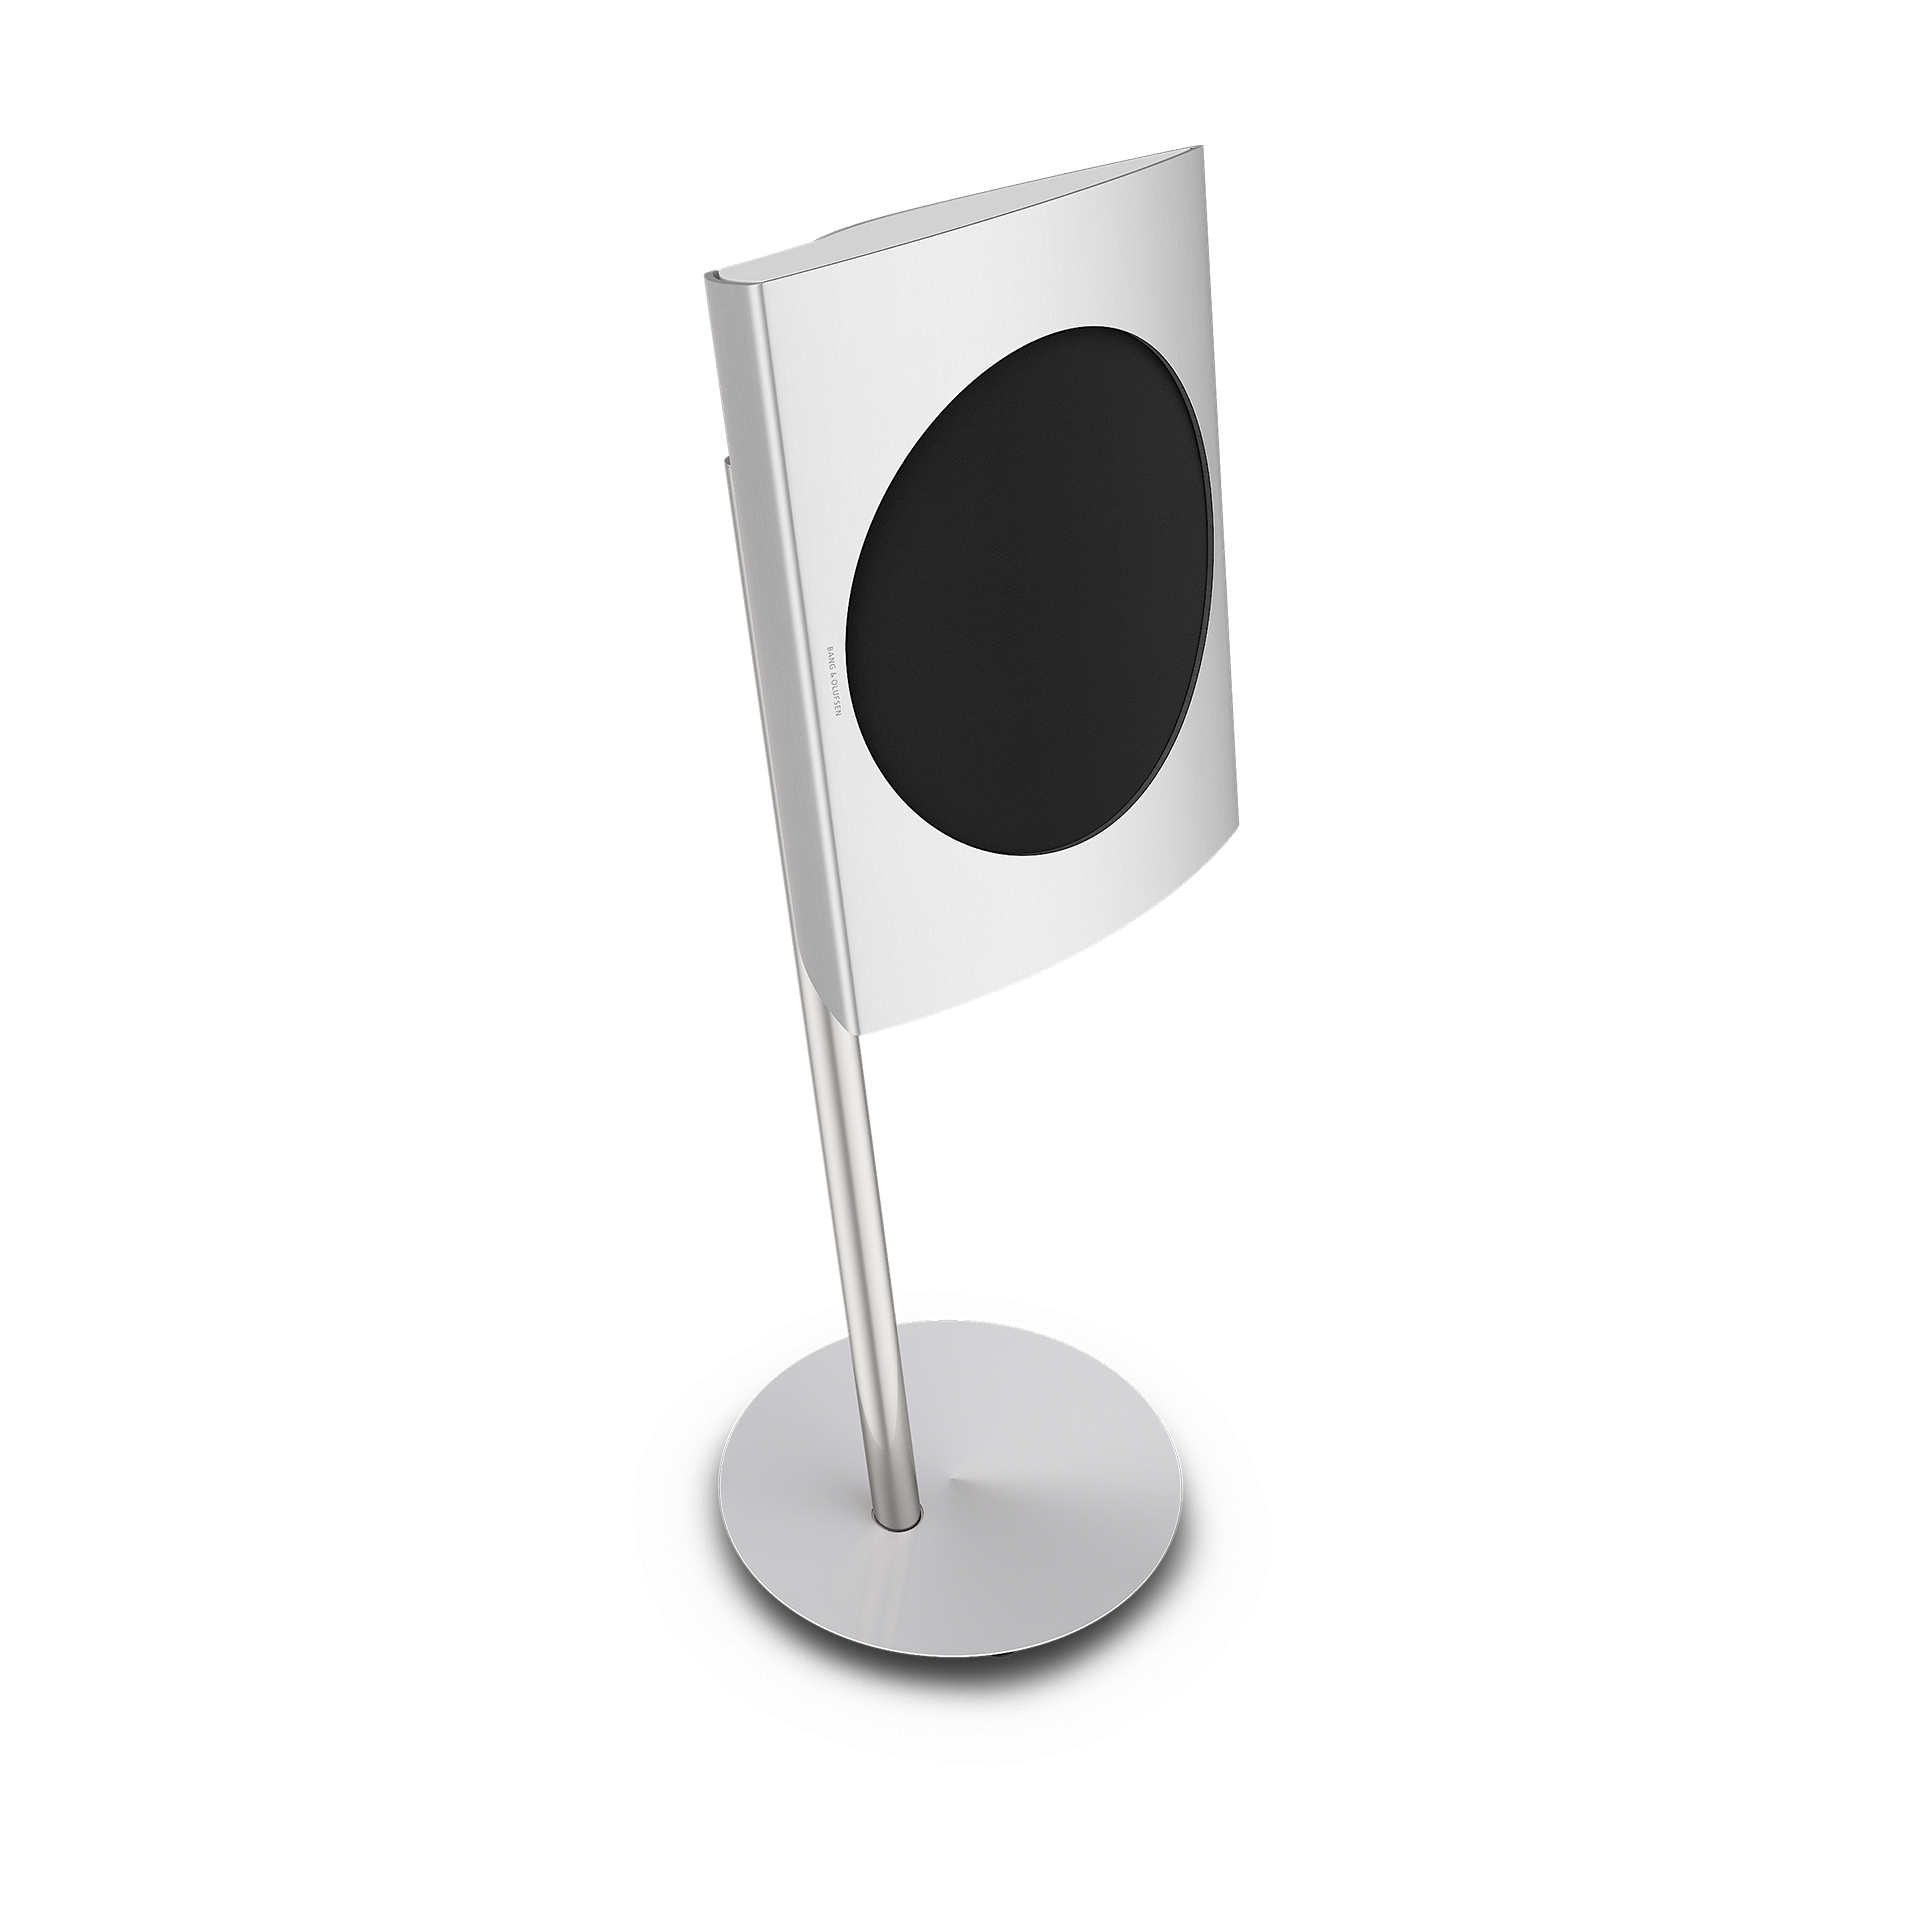 beolab 17 - Wireless harmonyWireless and ingeniously designed speaker with a forceful sound performance that punches way beyond its actual size.With floor stands. Black Grille and White End Caps.WERE £3,495 NOW £2,970